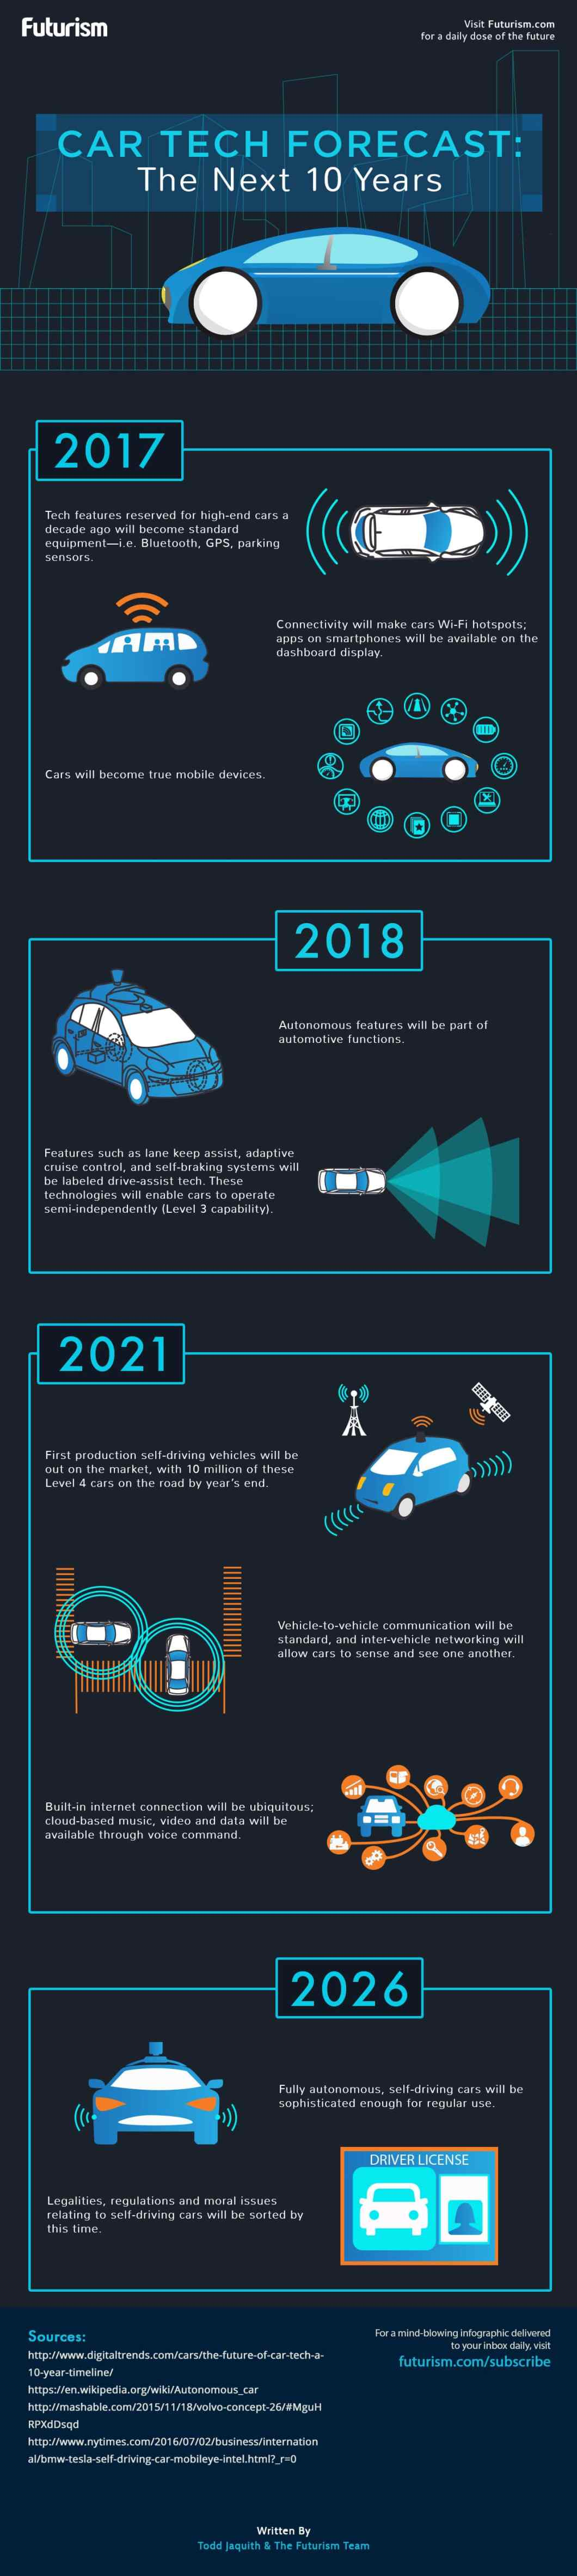 What The Future Of Car Technology Looks Like - Infographic